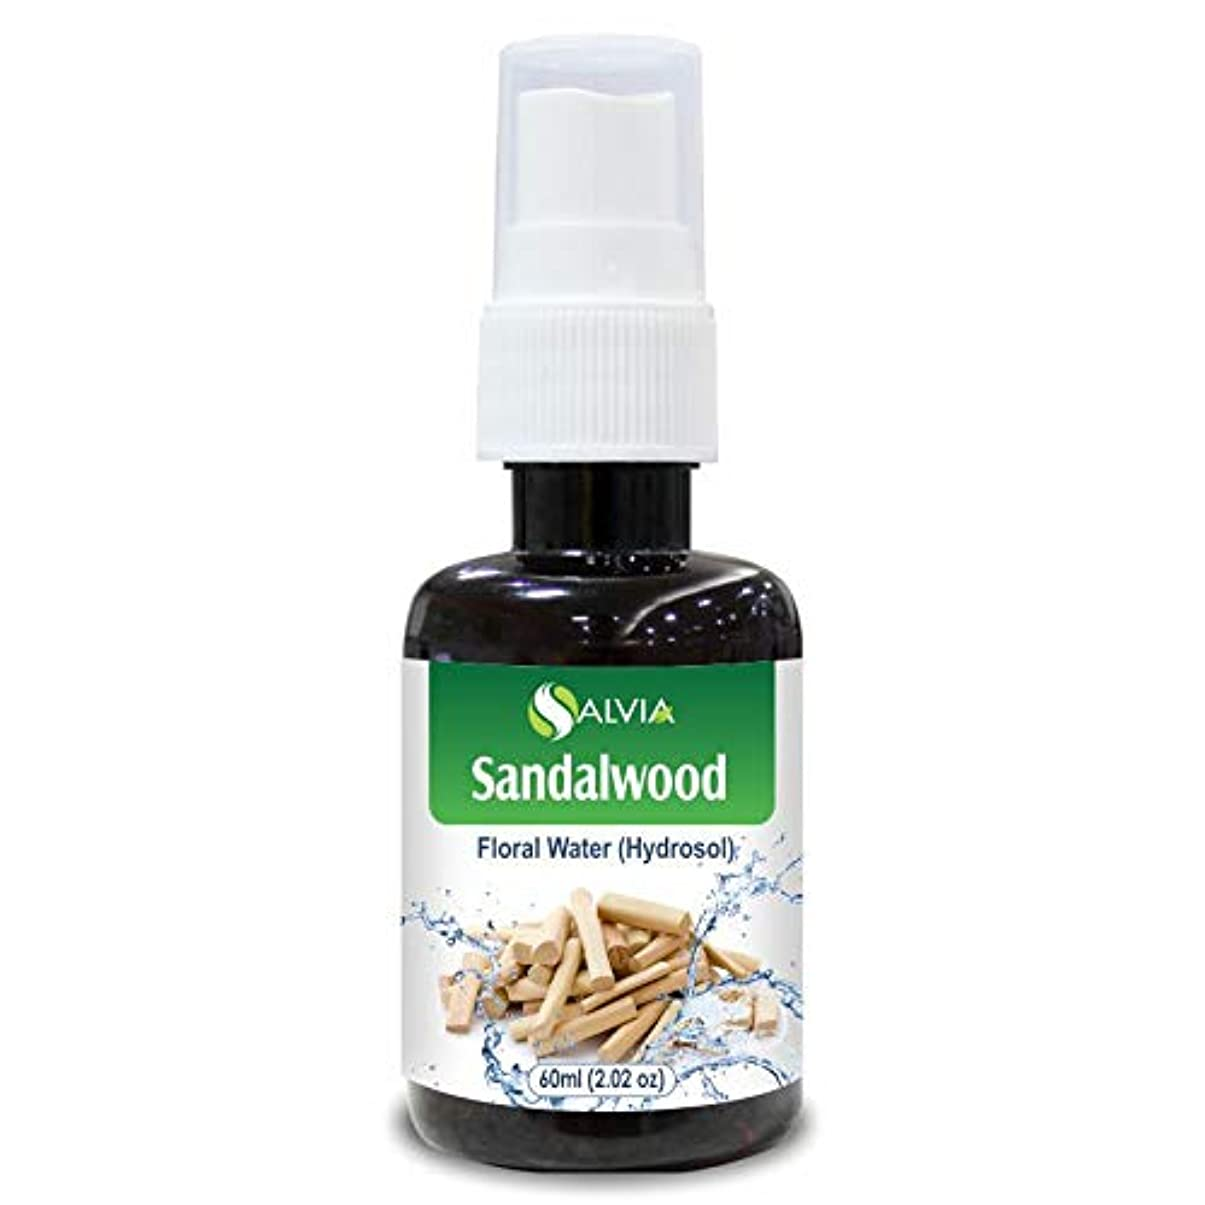 Sandalwood Floral Water 60ml (Hydrosol) 100% Pure And Natural